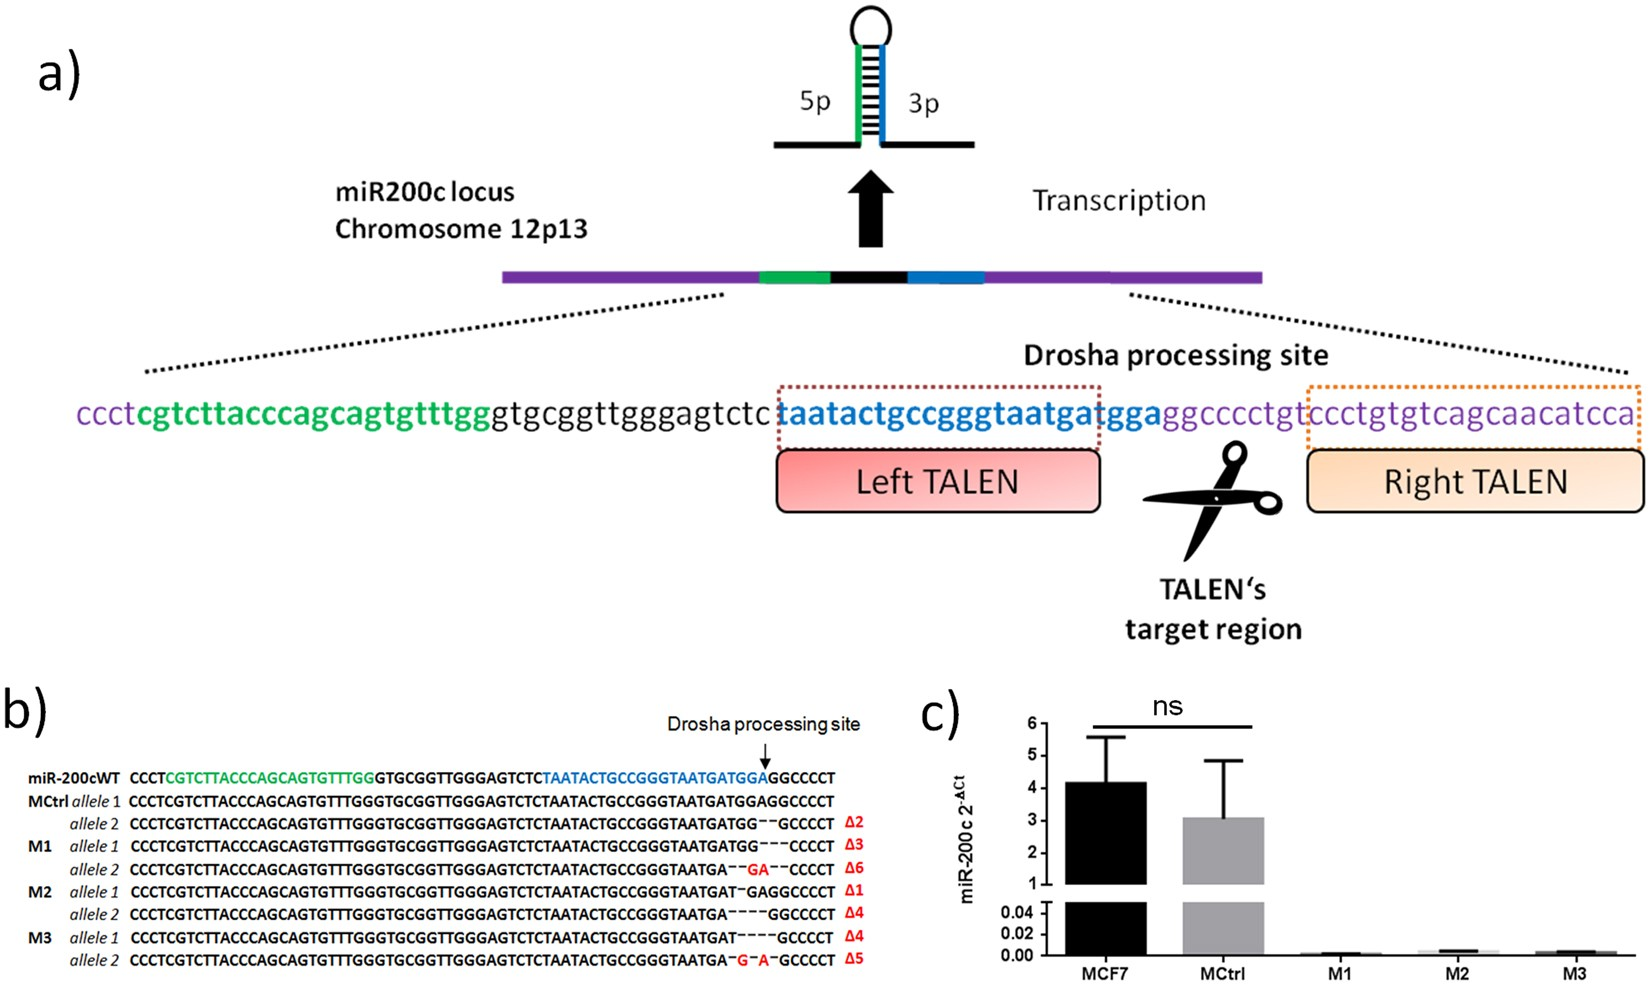 A proteomic analysis of an in vitro knock-out of miR-200c